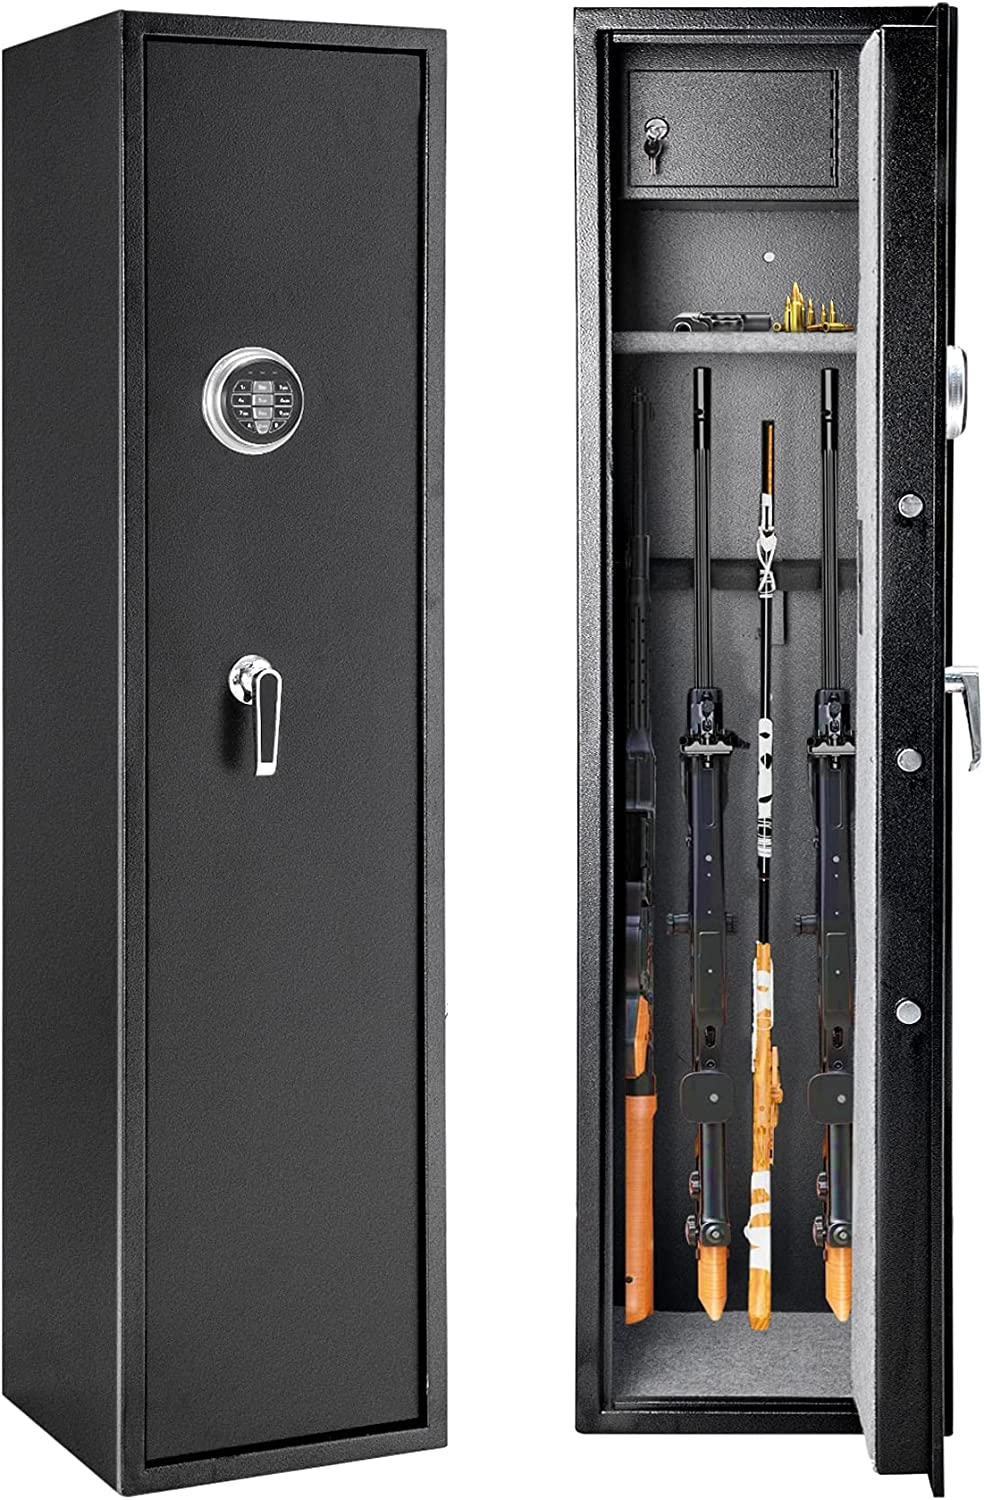 57 Inches High Large Rifle Gun Safe with Removable Storage Shelf, Quick Access Larger and Deeper Rifle Safe for 5-6 Shotgun, Security Gun Cabinet with Pistol/Handgun Lock Box, Silent Mode, Black